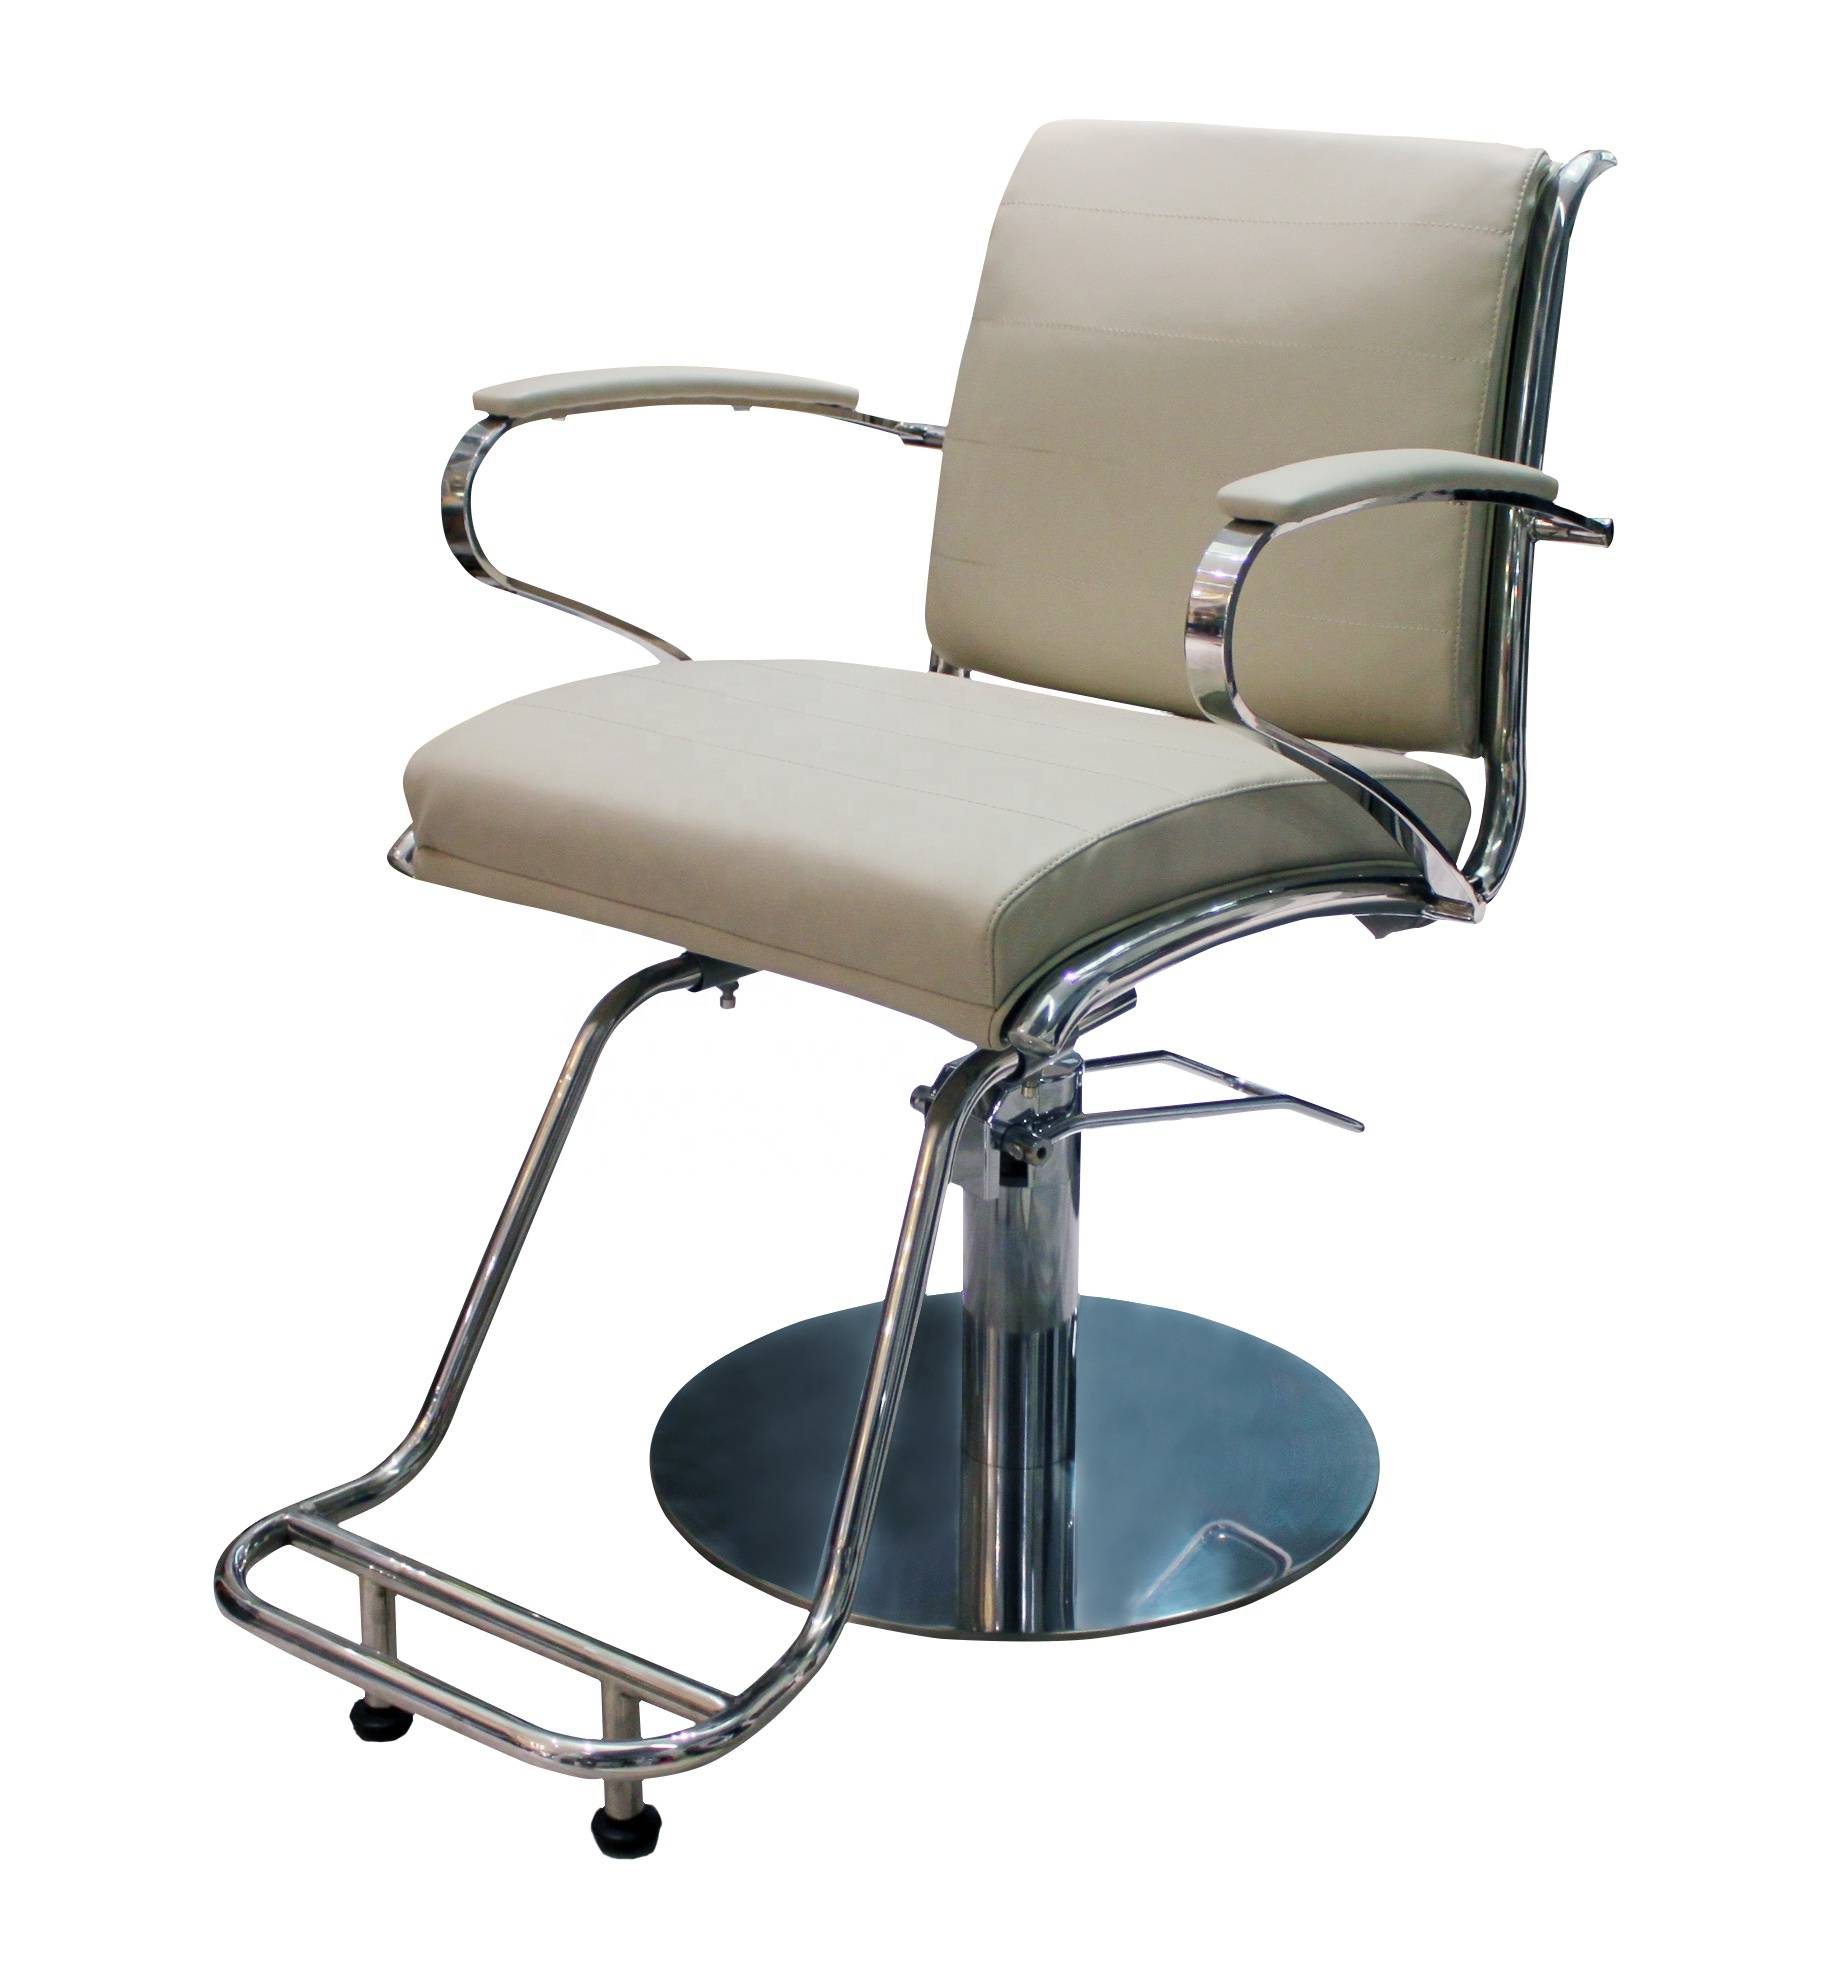 Exquisite barbershop salon equipment small beauty hairdressing chair styling chair